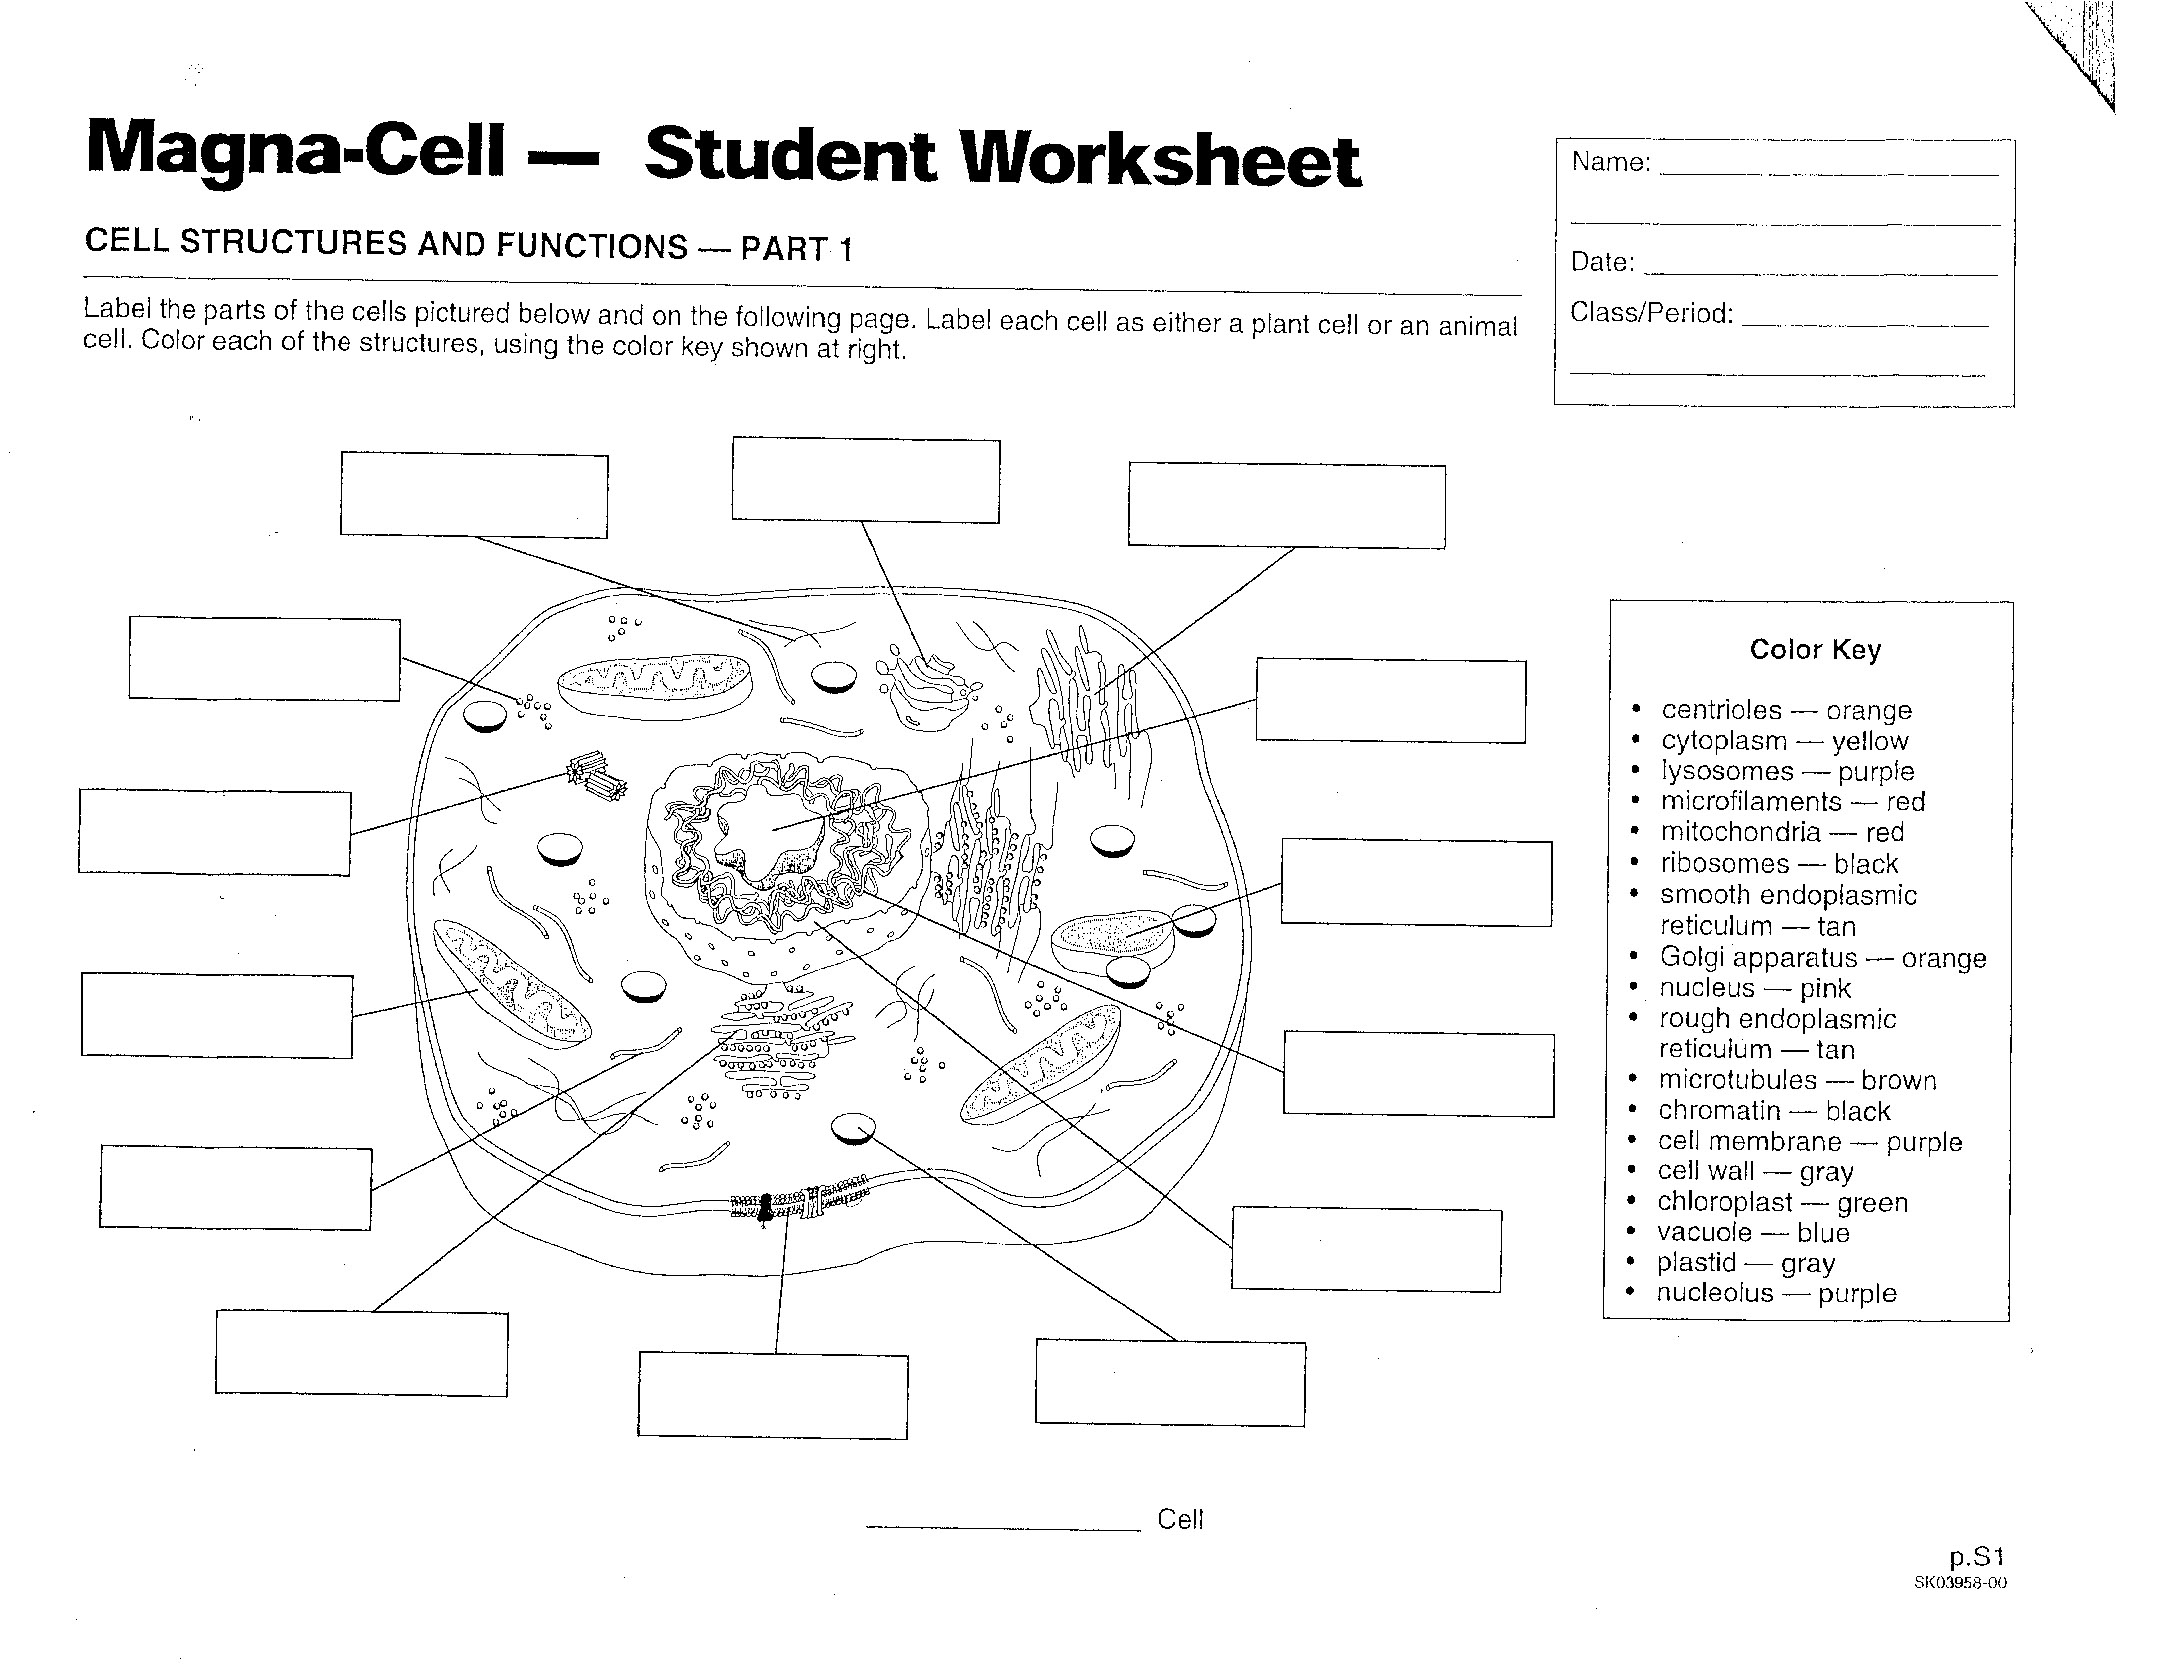 Cells mrs musto 7th grade life science download file robcynllc Choice Image